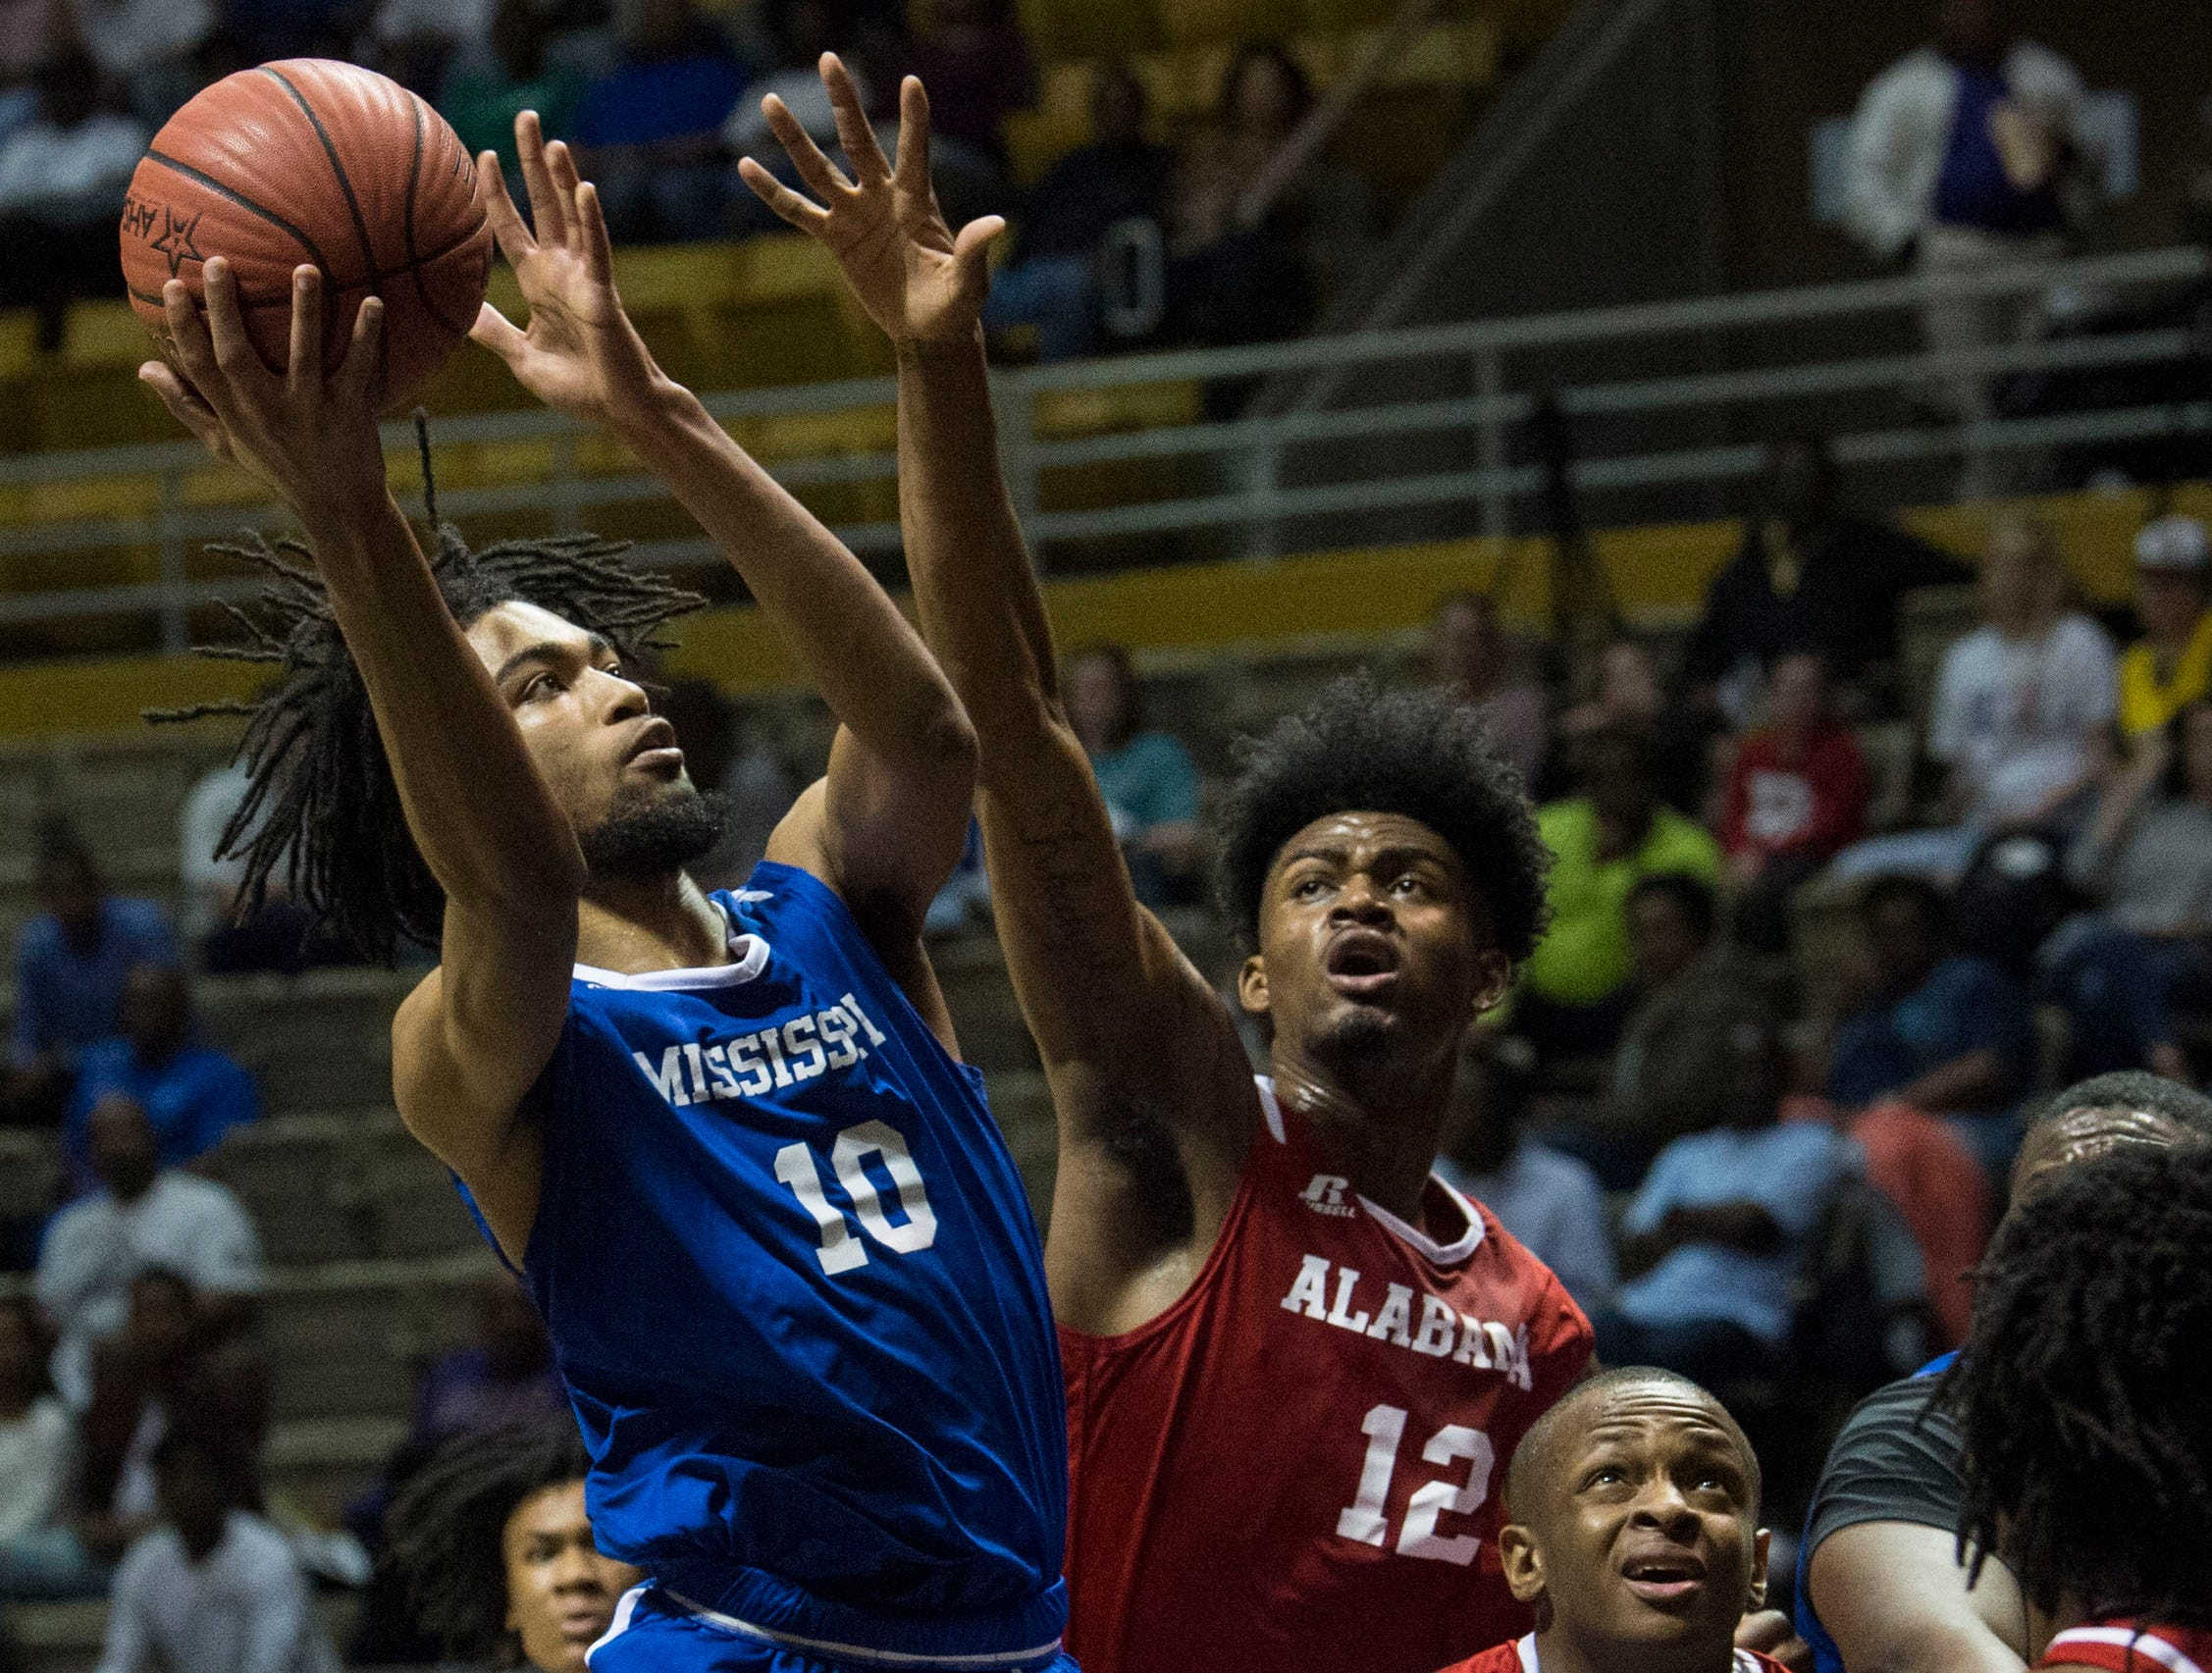 Mississippi's Vontrell Pringle (10) goes up for a layup during the Alabama-Mississippi All-Star game at the Dunn-Oliver Acadome in Montgomery, Ala., on Friday, March 15, 2019. Mississippi All-stars leads the Alabama All-stars 47-39 at halftime.